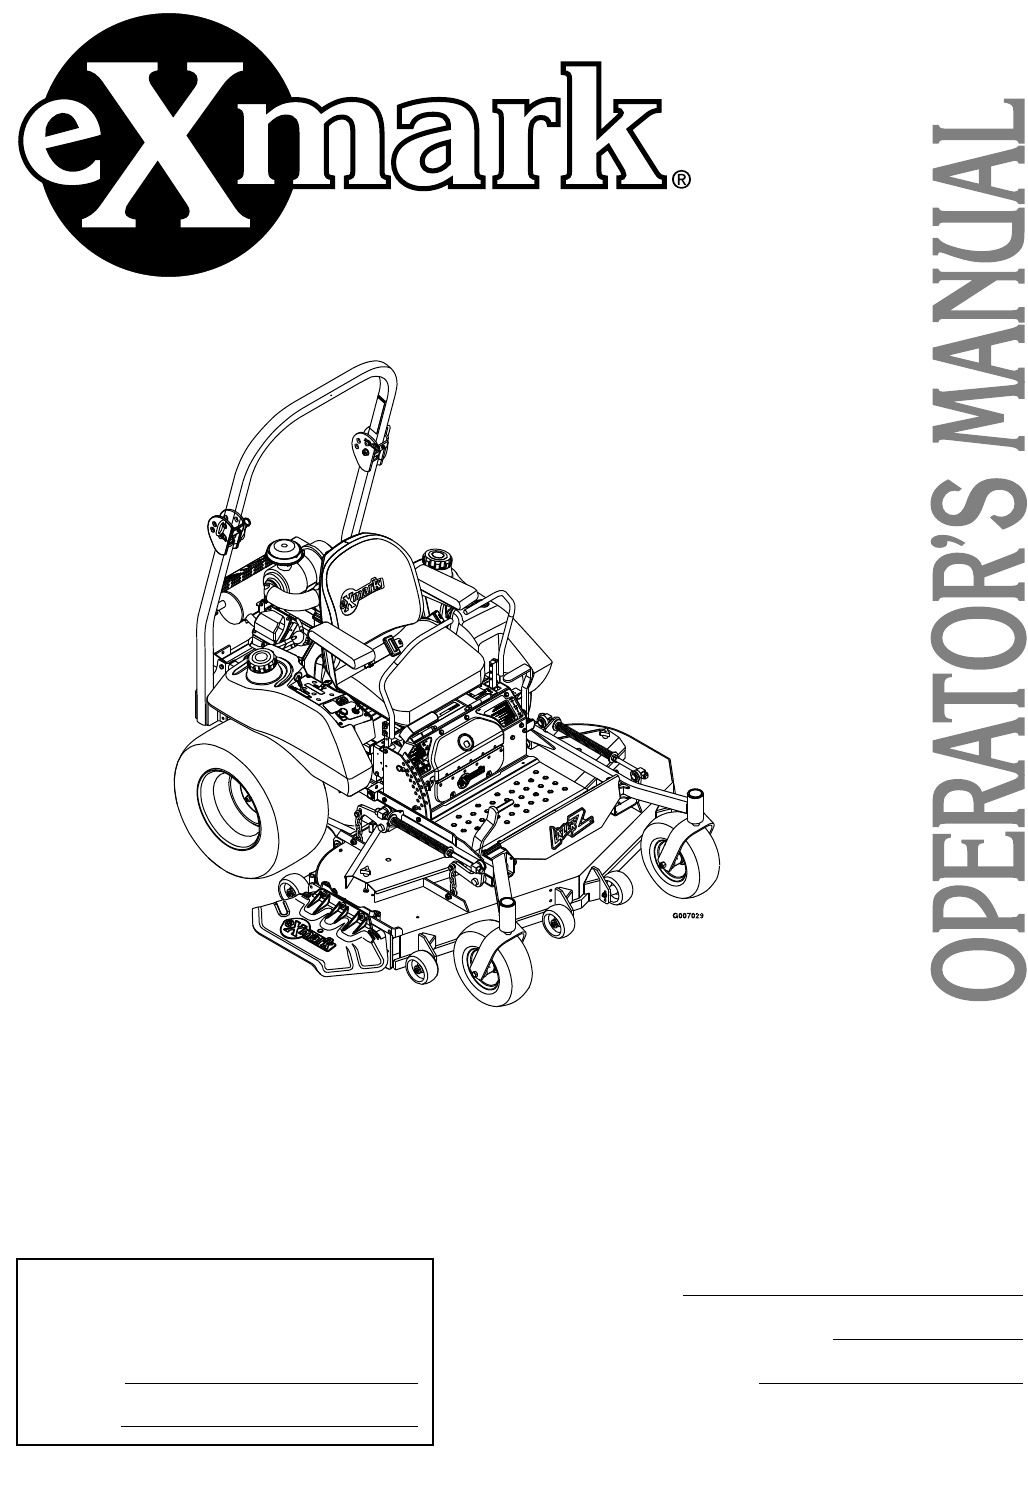 Exmark Lawn Mower Lz27kc604 User Guide Manualsonlinecom Engine Housing Diagram And Parts List For Craftsman Walkbehindlawn Serial Nos